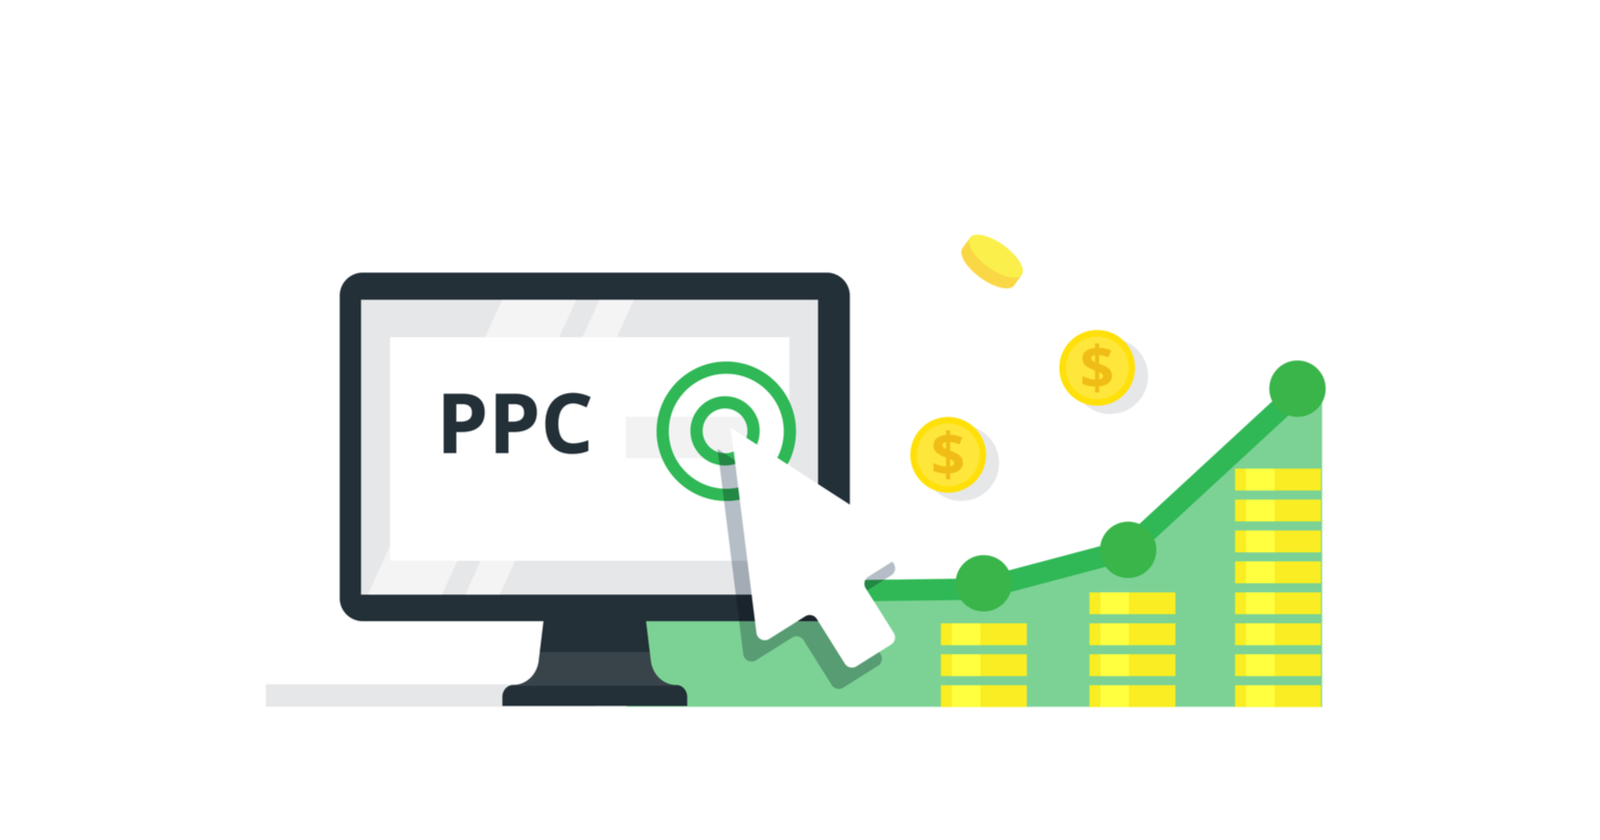 Key COVID-19 Search Trends & 5 Immediate PPC Strategies to Act On via @christijolson